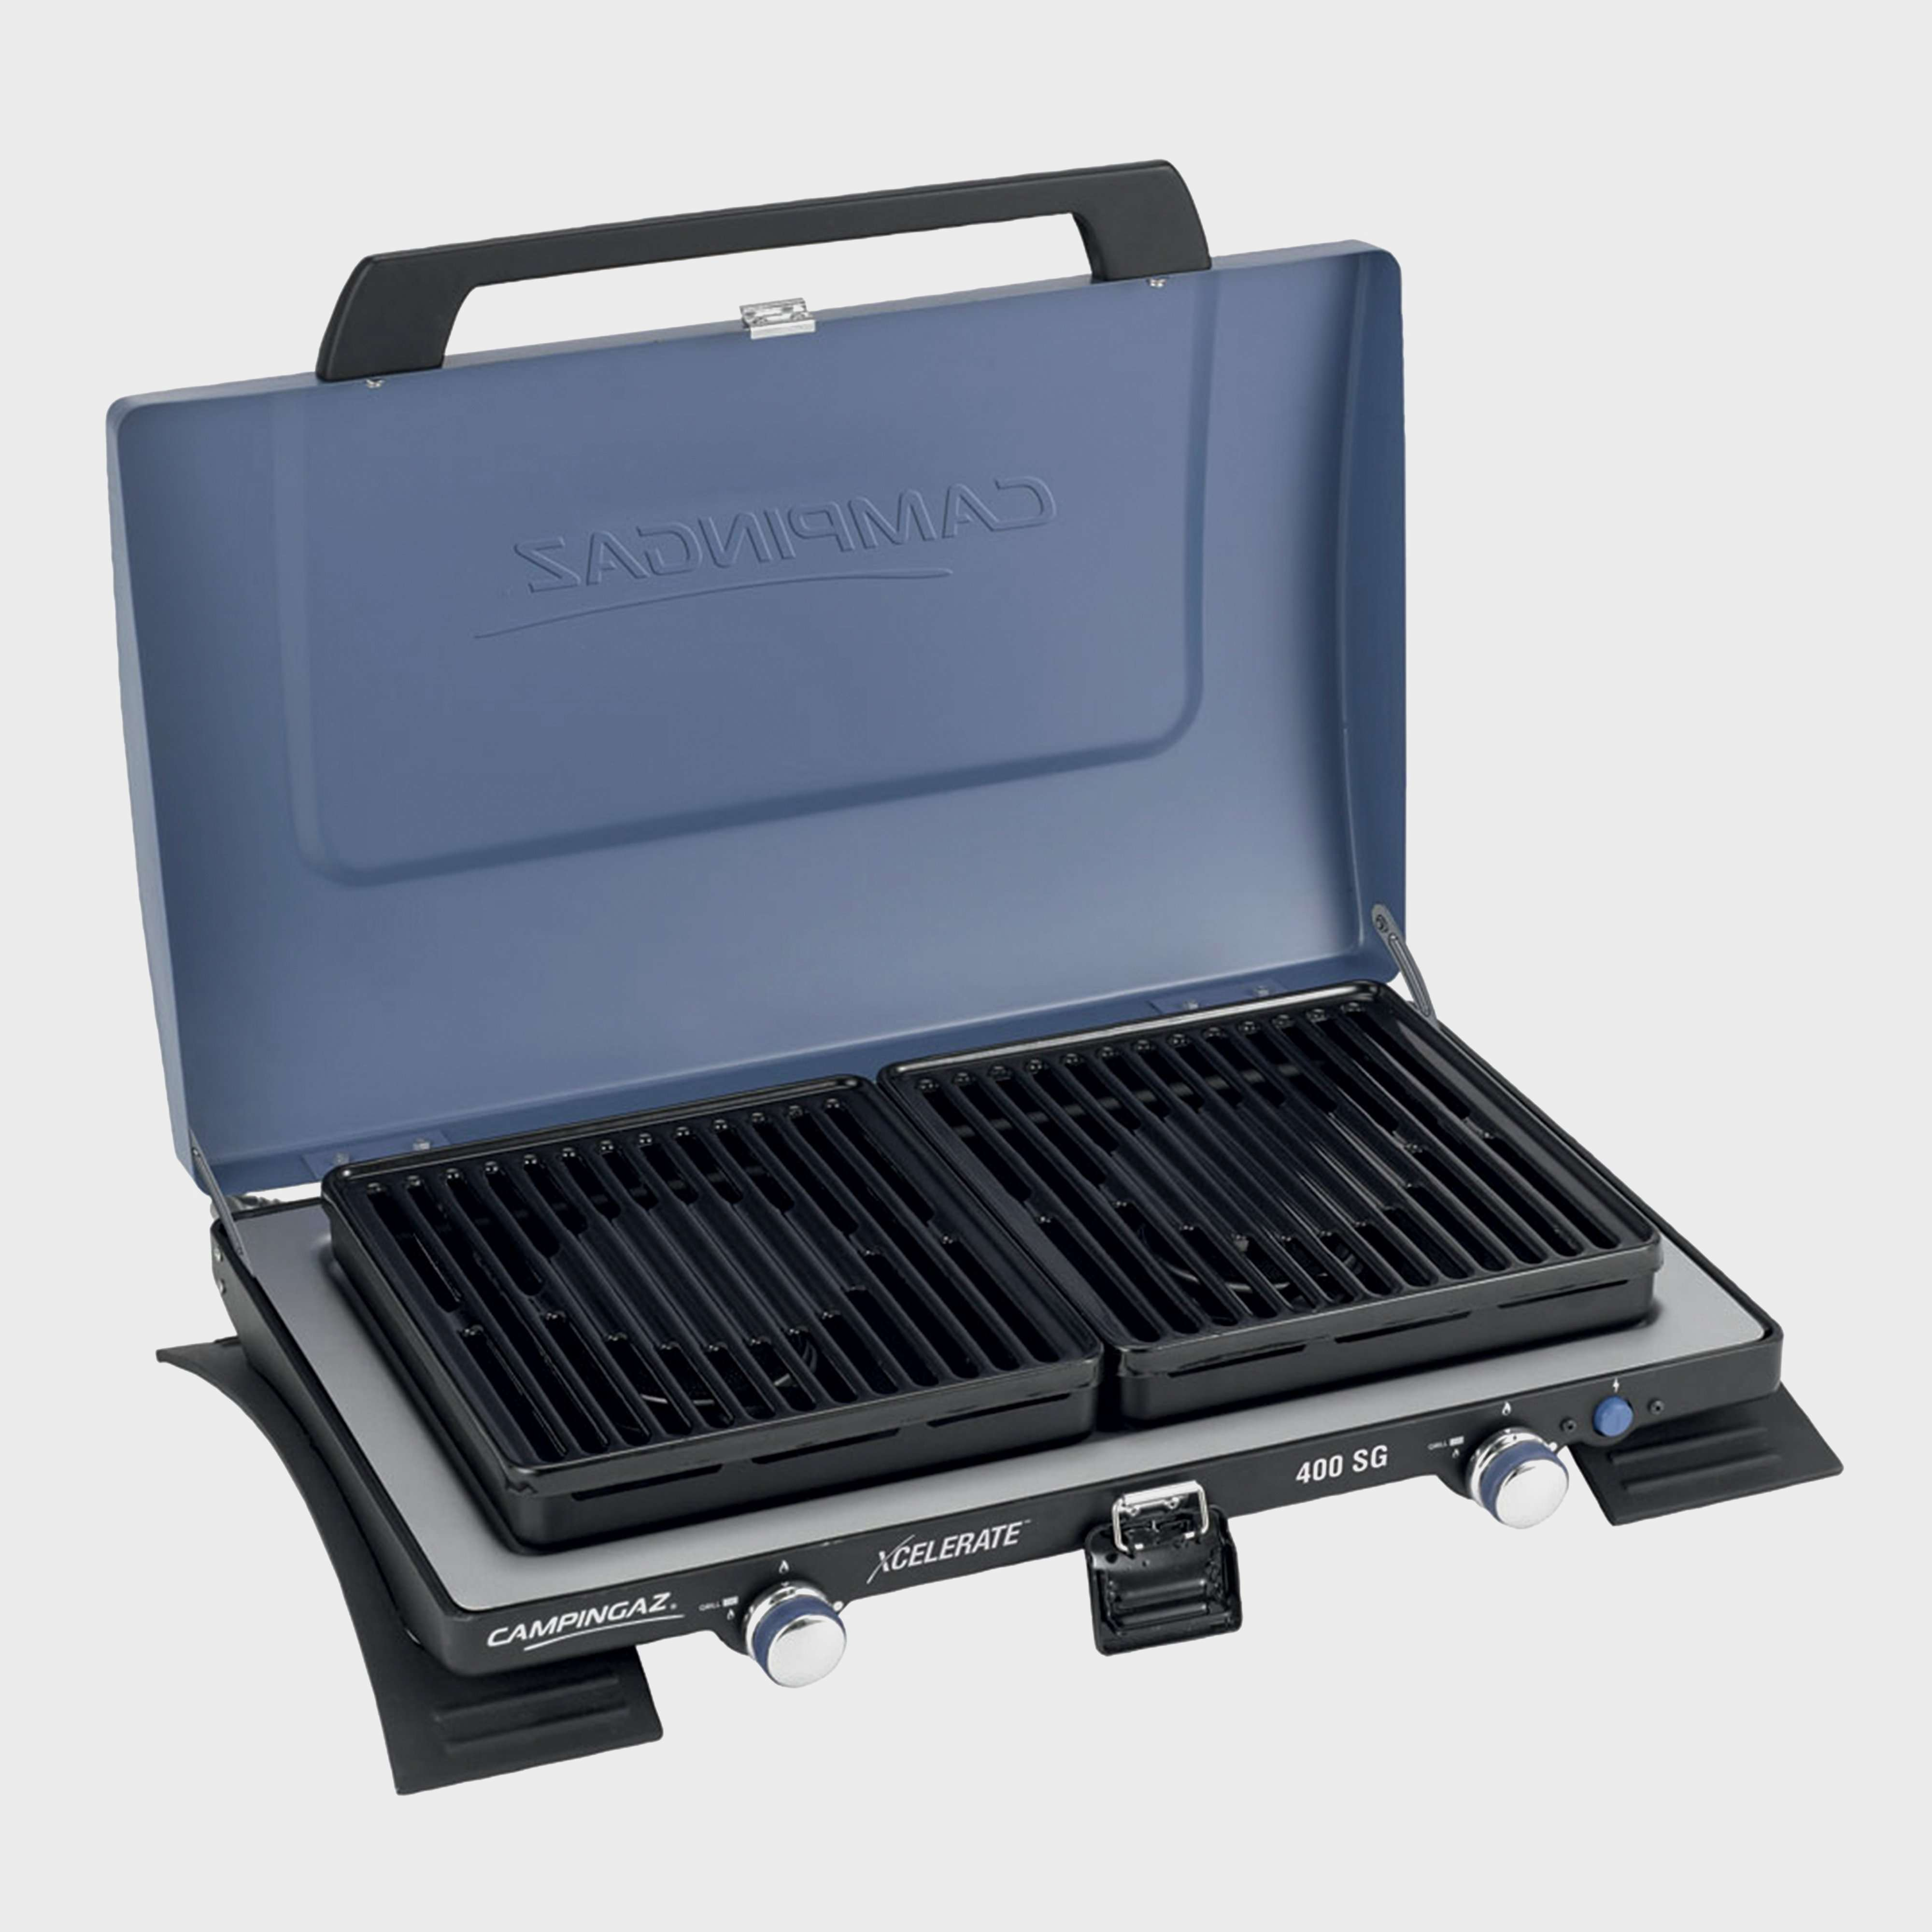 CAMPINGAZ 400 Series Stove and Grill